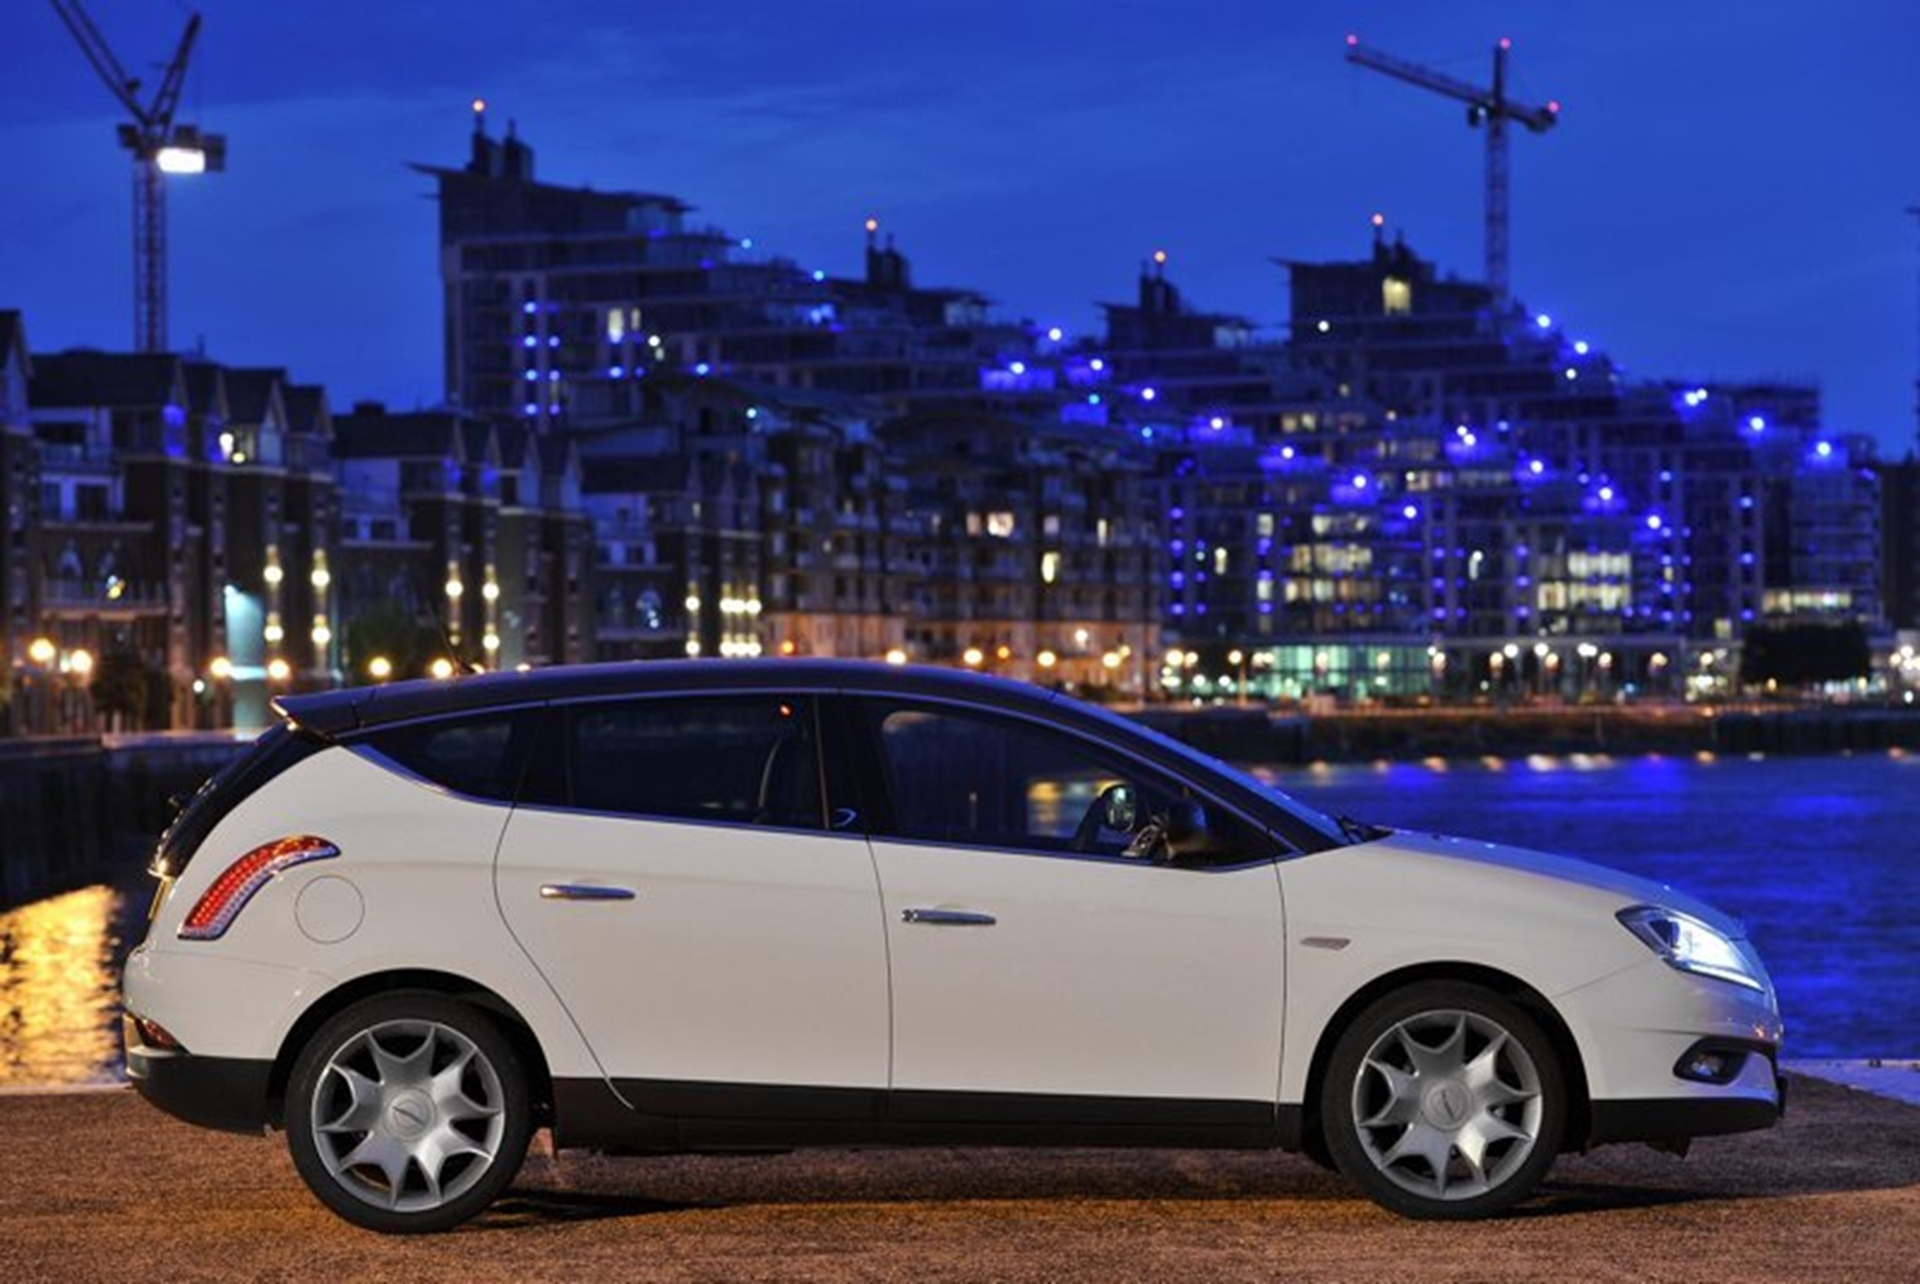 Chrysler Delta 2011 City View